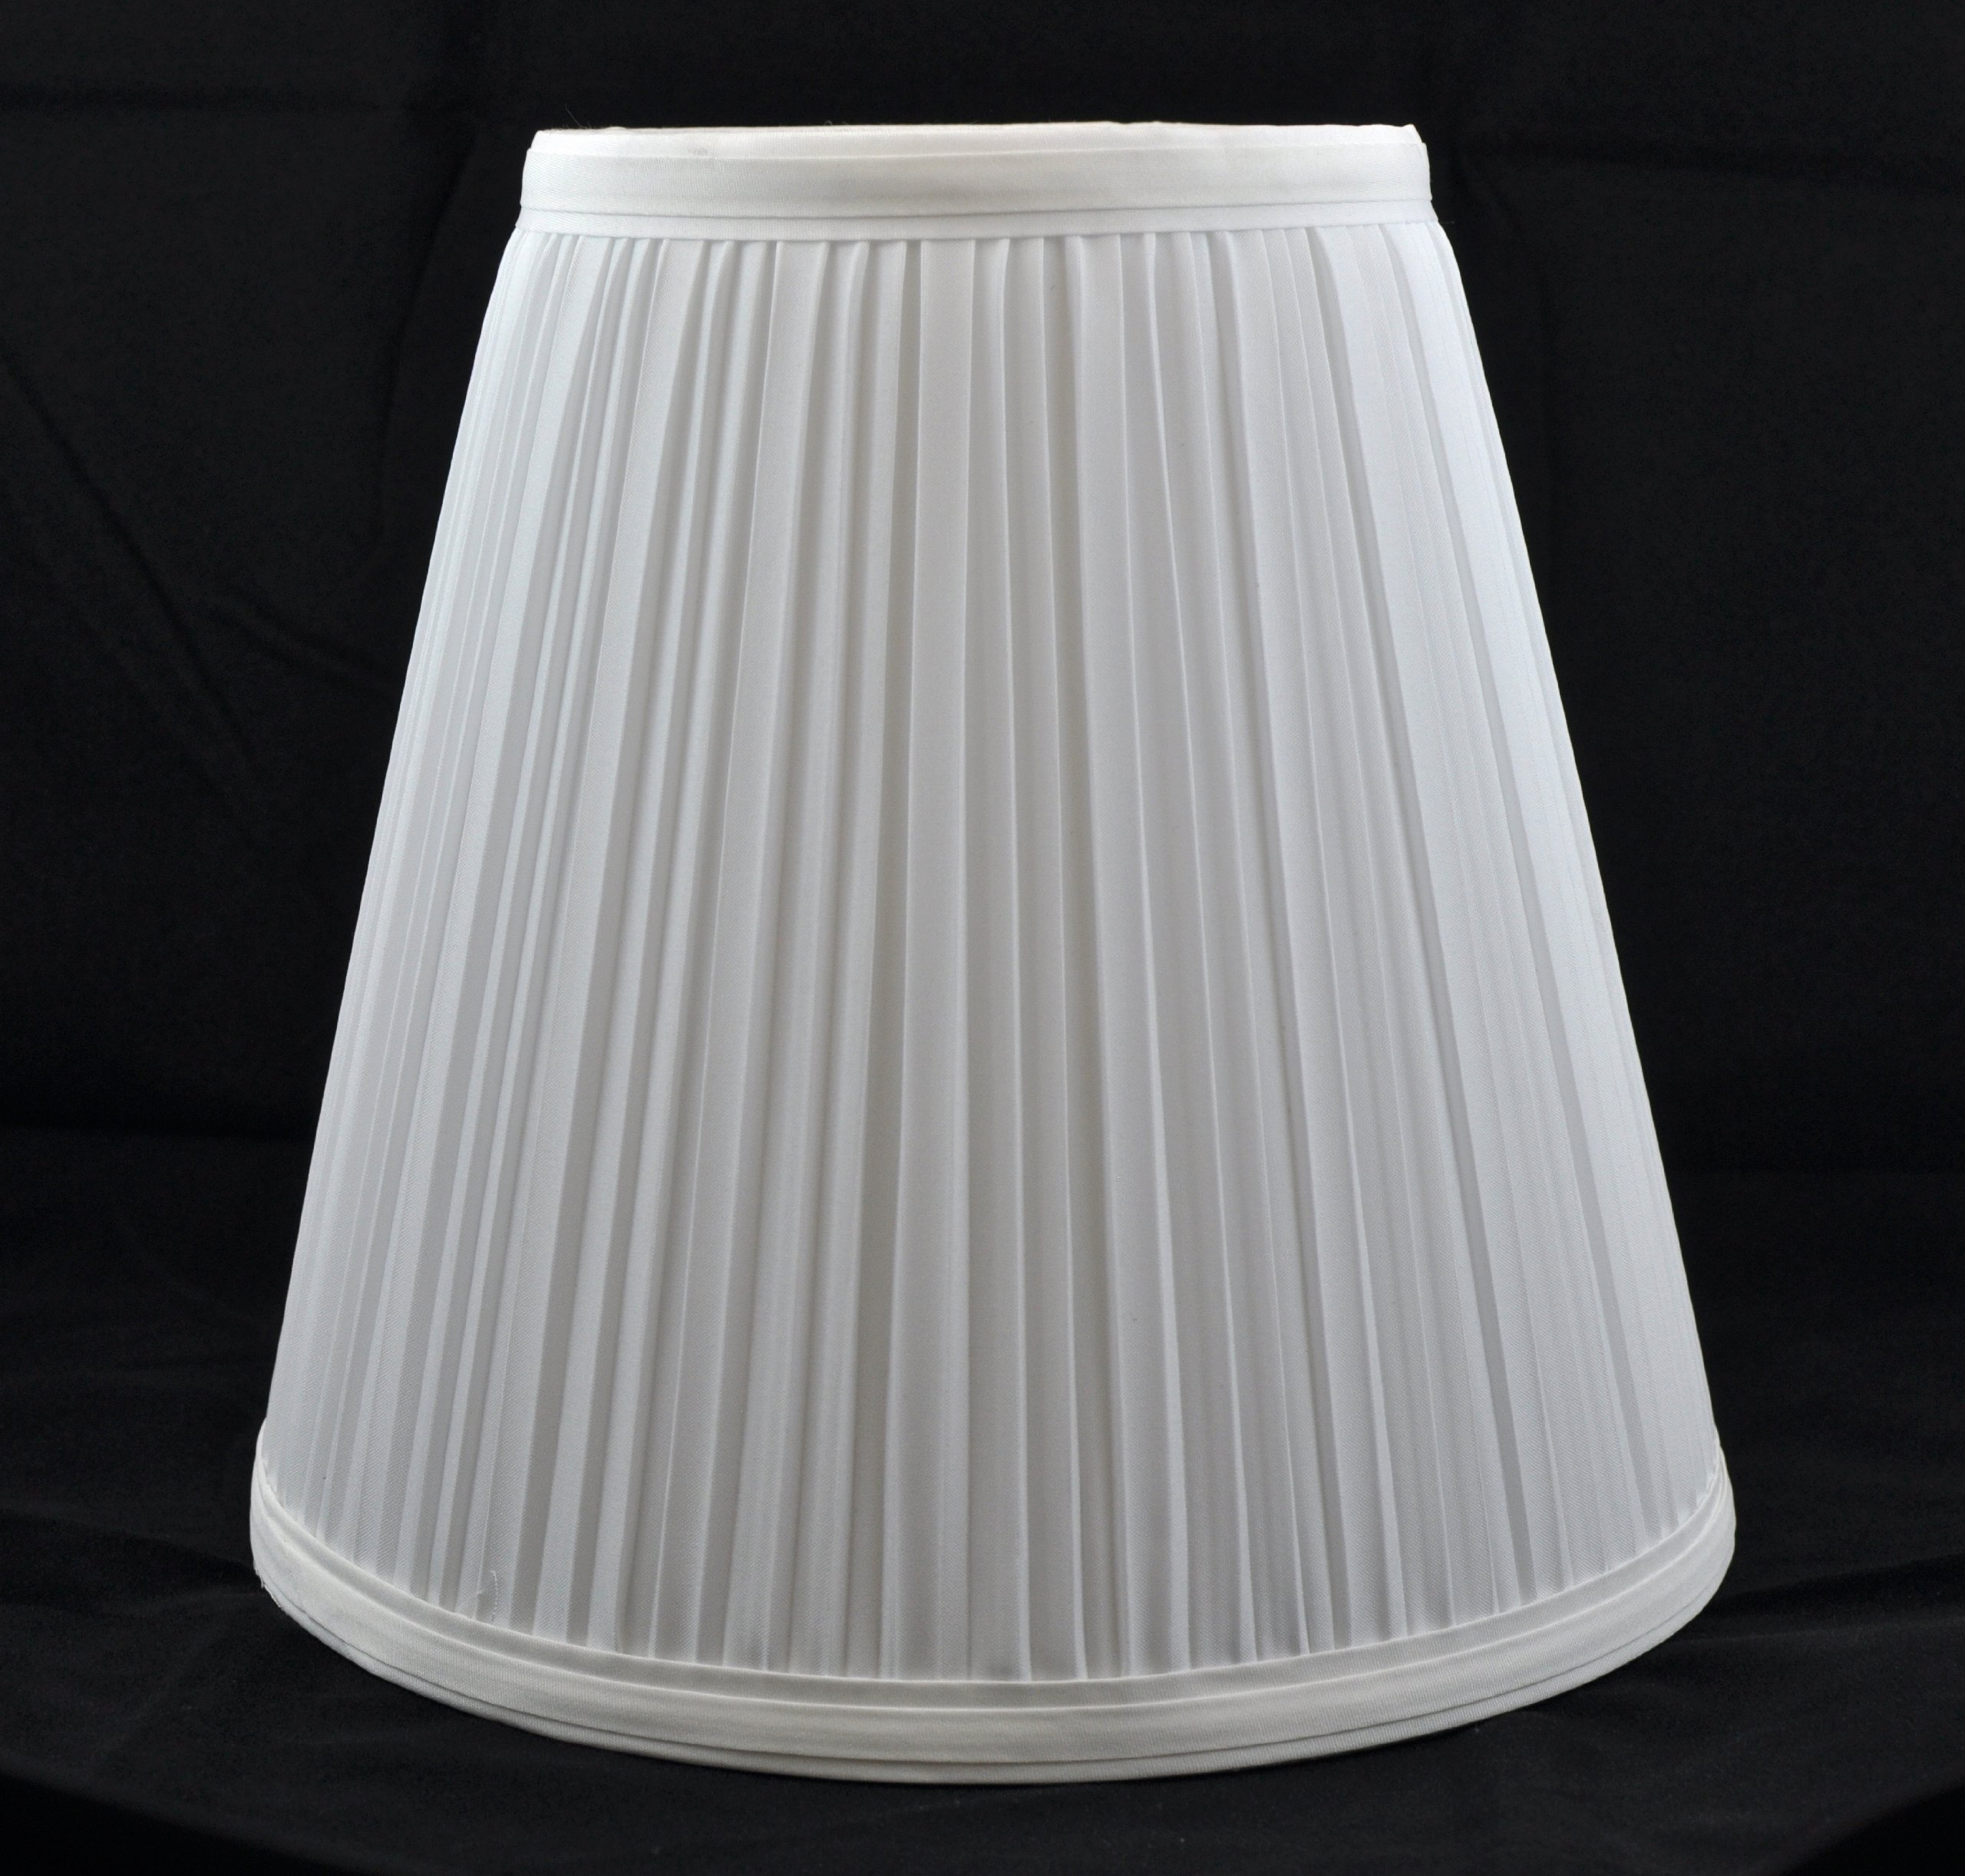 Urbanest 1101484 Off White Mushroom Pleated Hardback Lamp Shade 5x9x8.5 Inch (Spider)